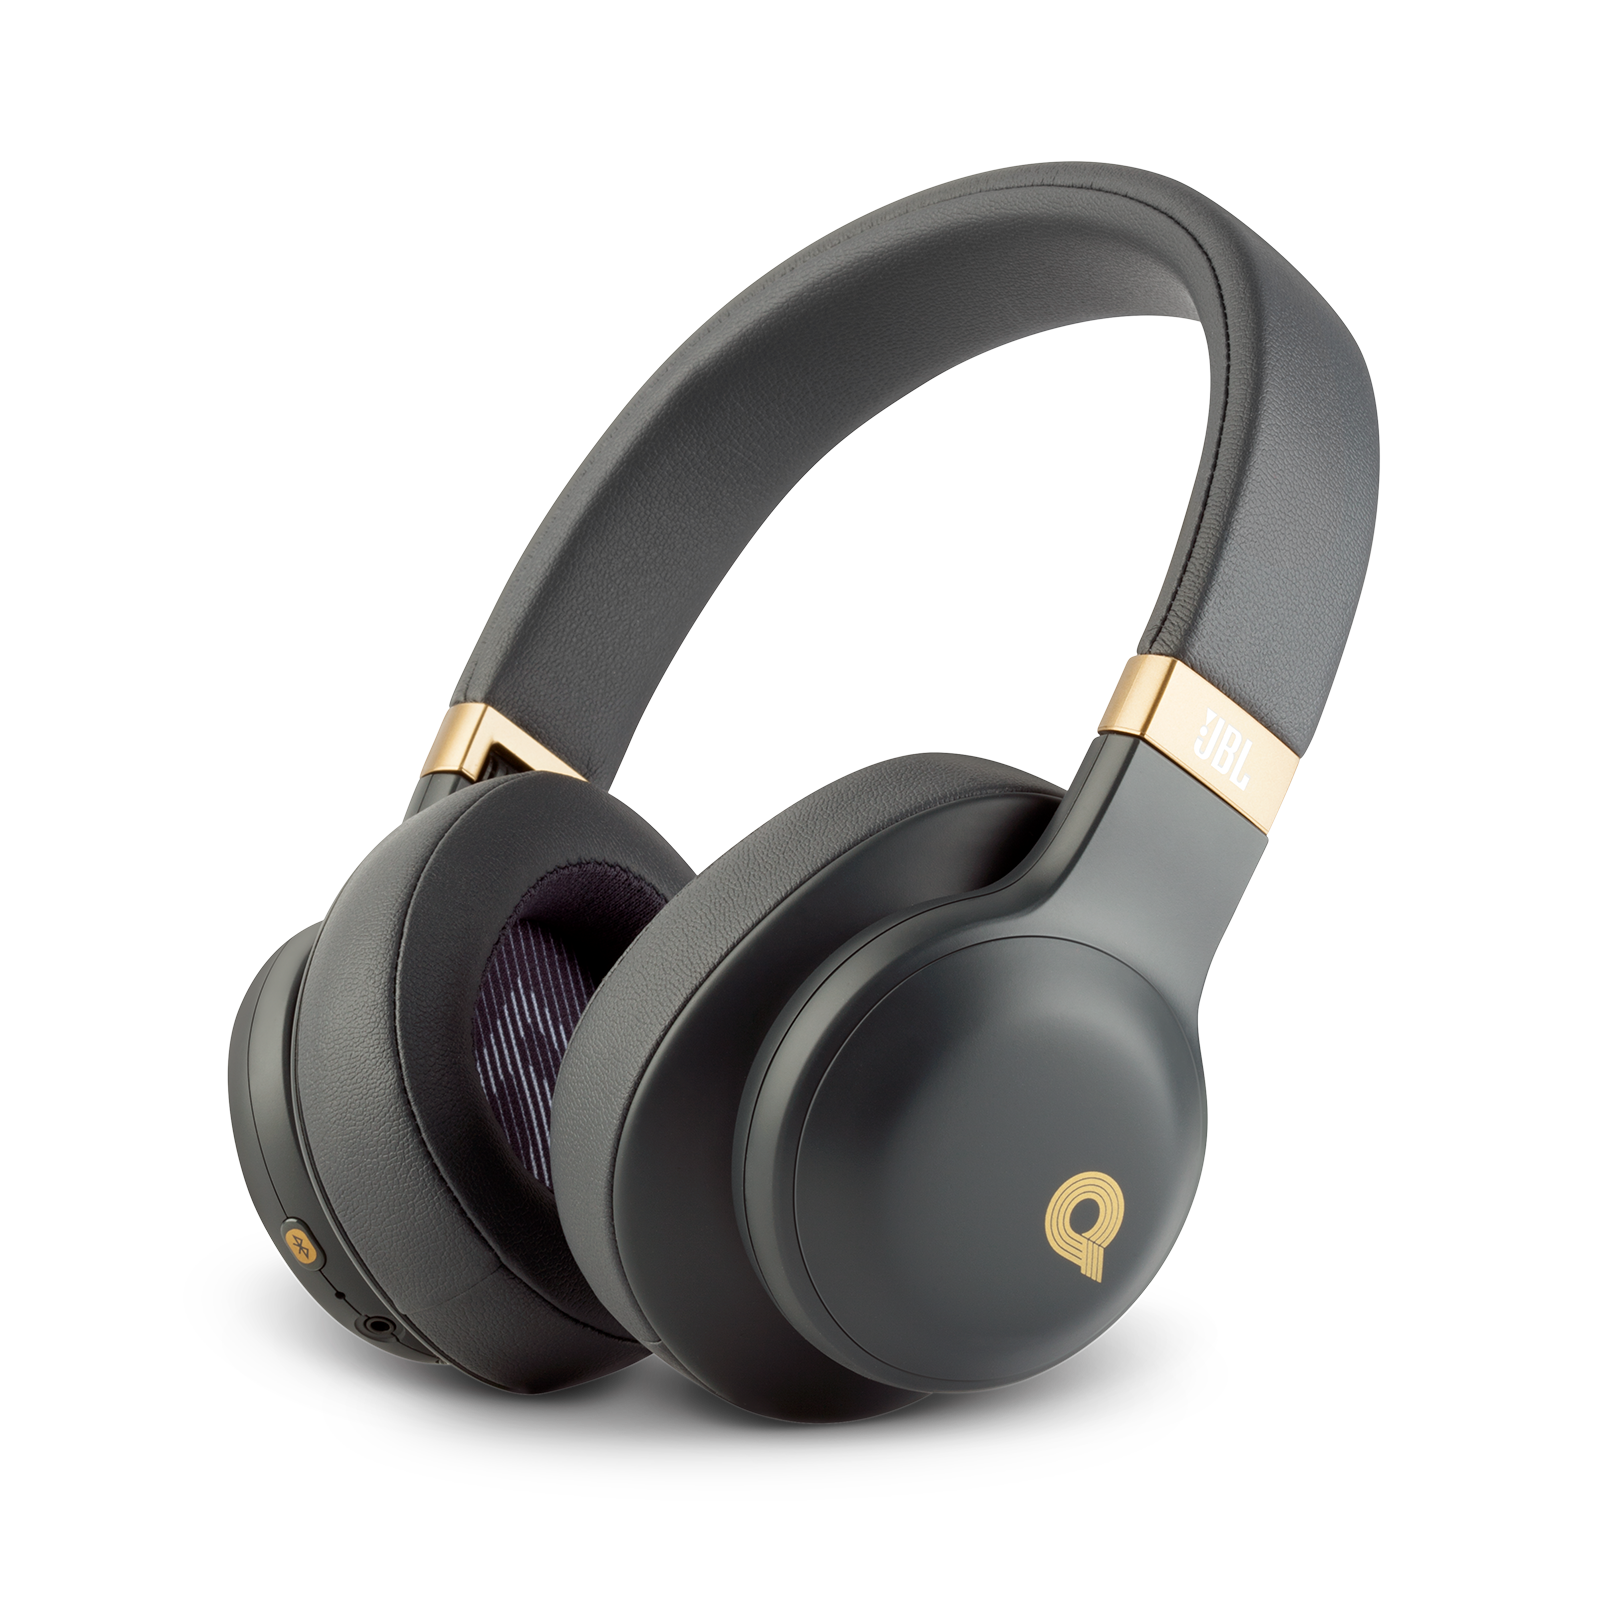 JBL E55BT Quincy Edition - Space Gray - Wireless over-ear headphones with Quincy's signature sound. - Hero